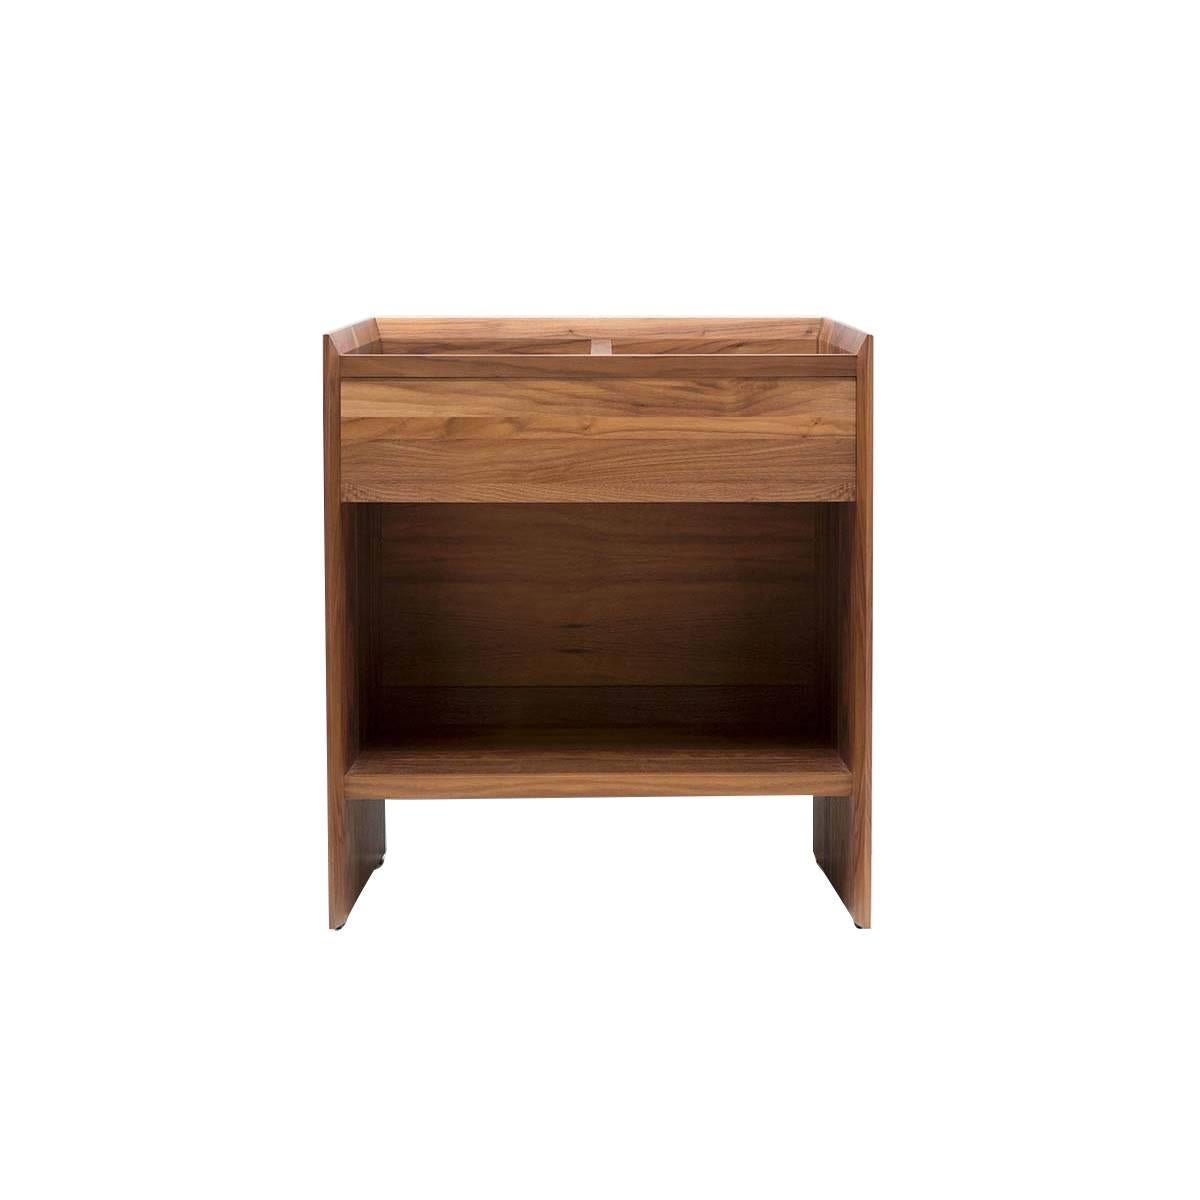 24 unison vinyl record storage stand natural walnut for sale at 1stdibs